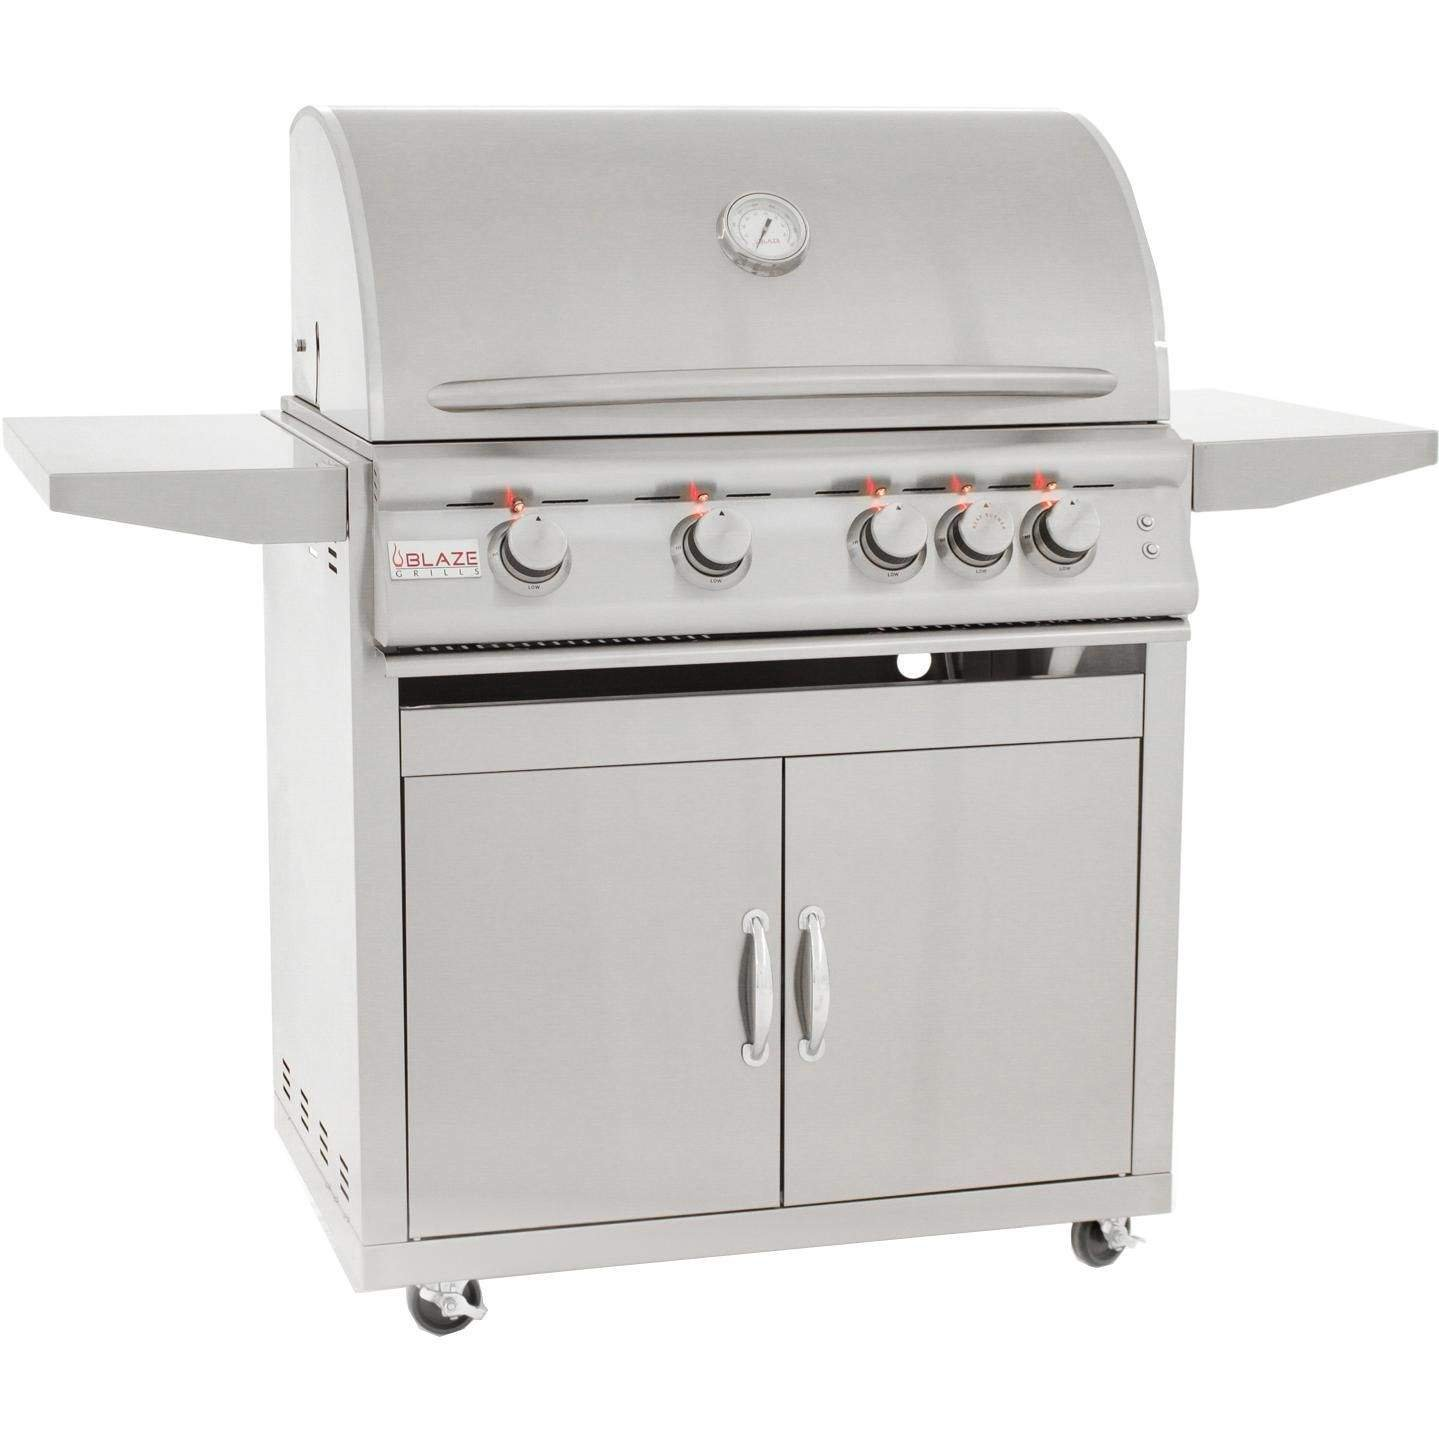 Blaze 32-inch Grill with Lights (BLZ-4LTE-LP-BLZ-4-CART), Freestanding, Propane Gas by Blaze